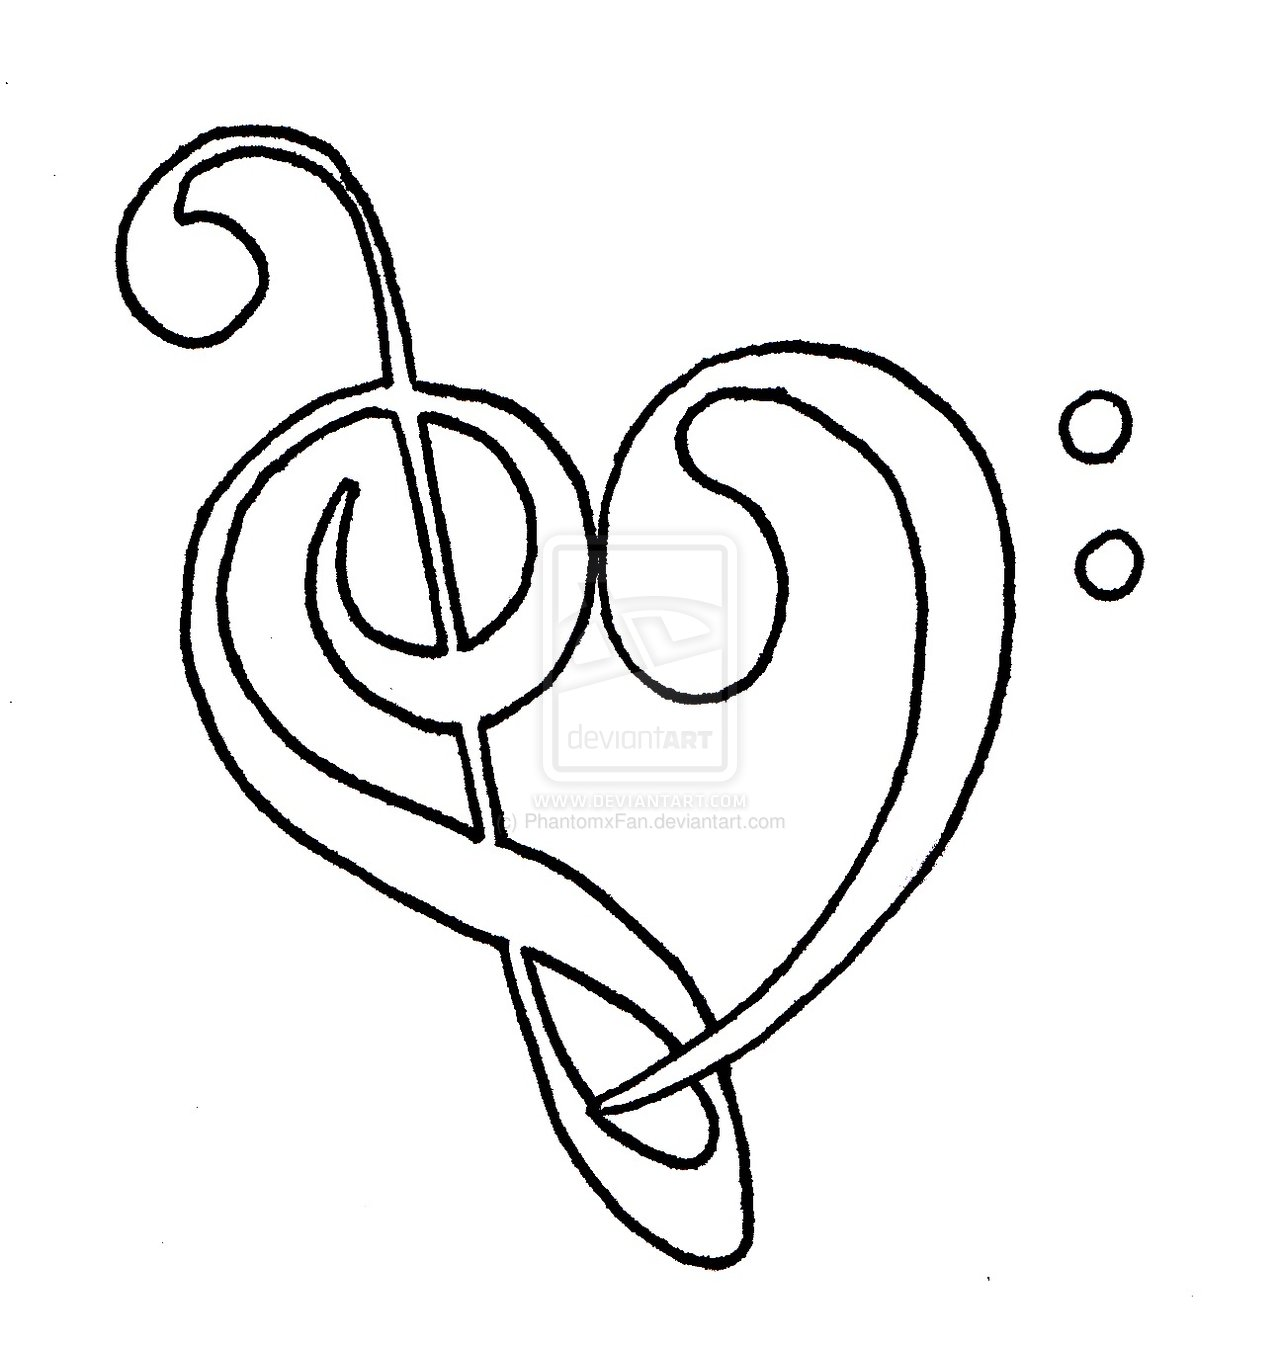 1280x1346 19 Heart Designs Cool Music Images